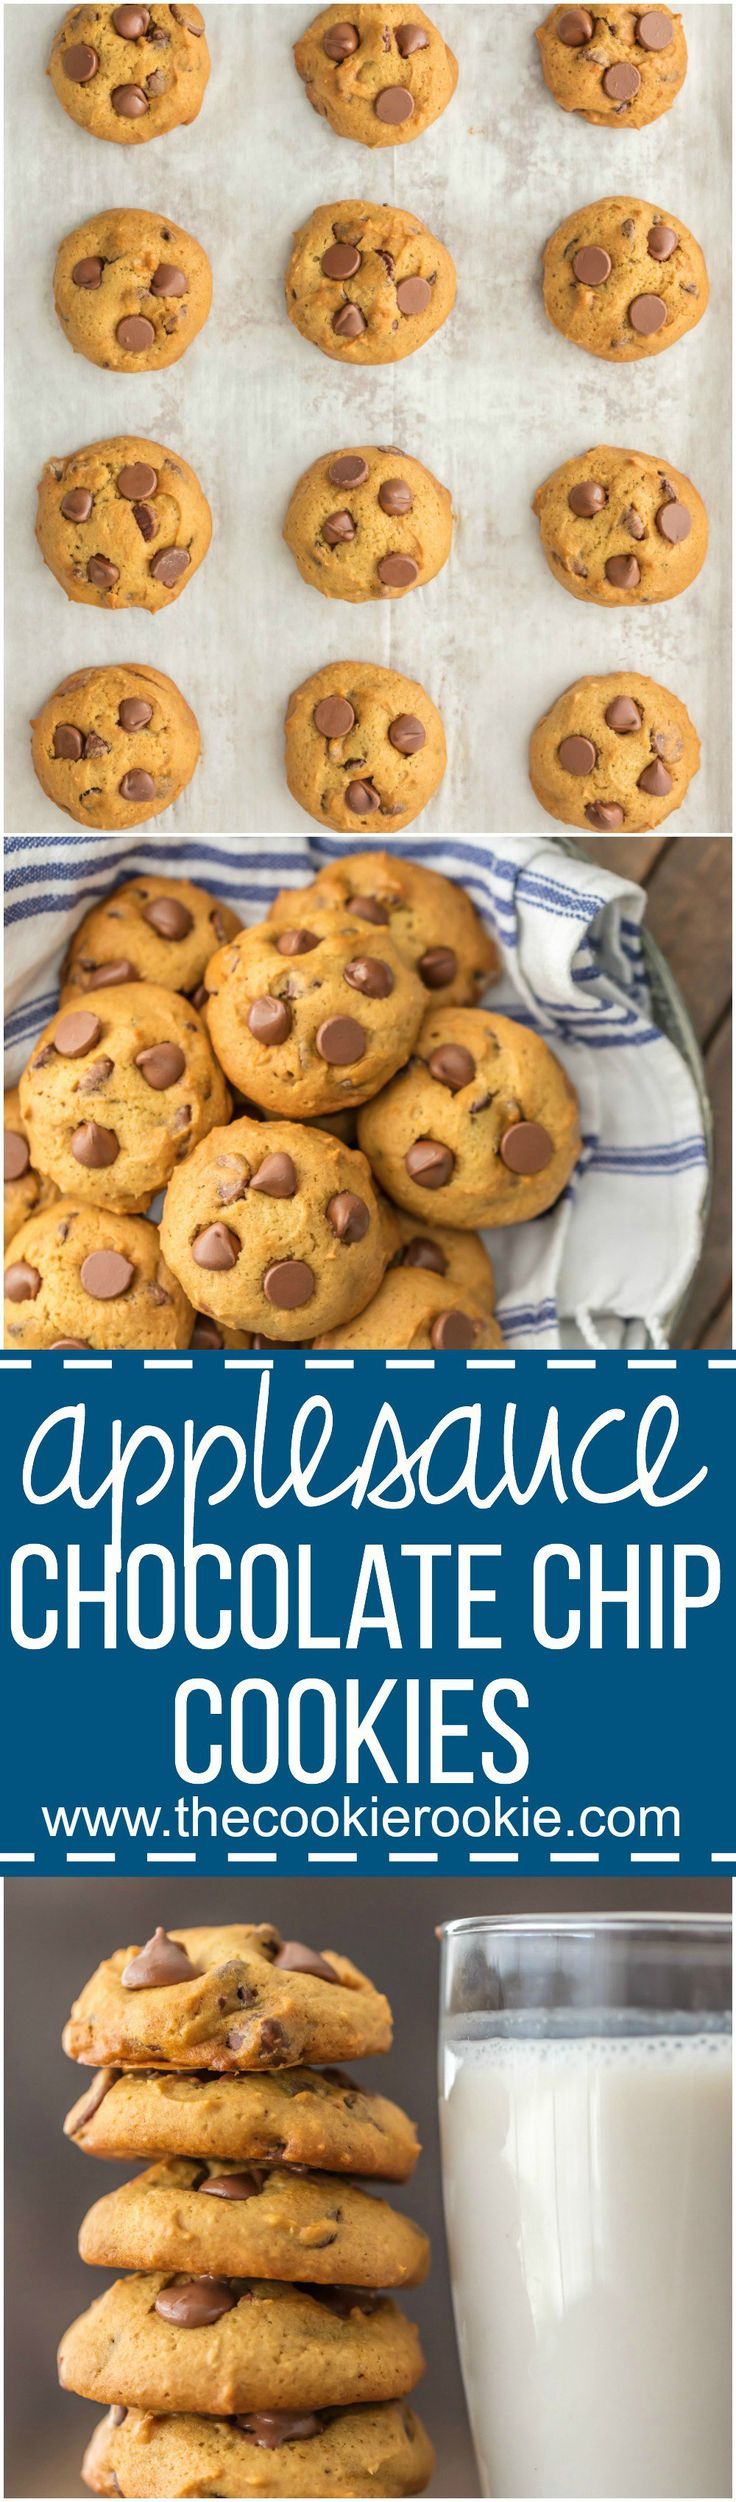 APPLESAUCE CHOCOLATE CHIP COOKIES are the perfect skinny(er) way to enjoy holiday baking! These soft chocolate chip cookies are loaded with chocolate and made with applesauce! Amazing flavor, less calories, and you can eat the dough with no worries!